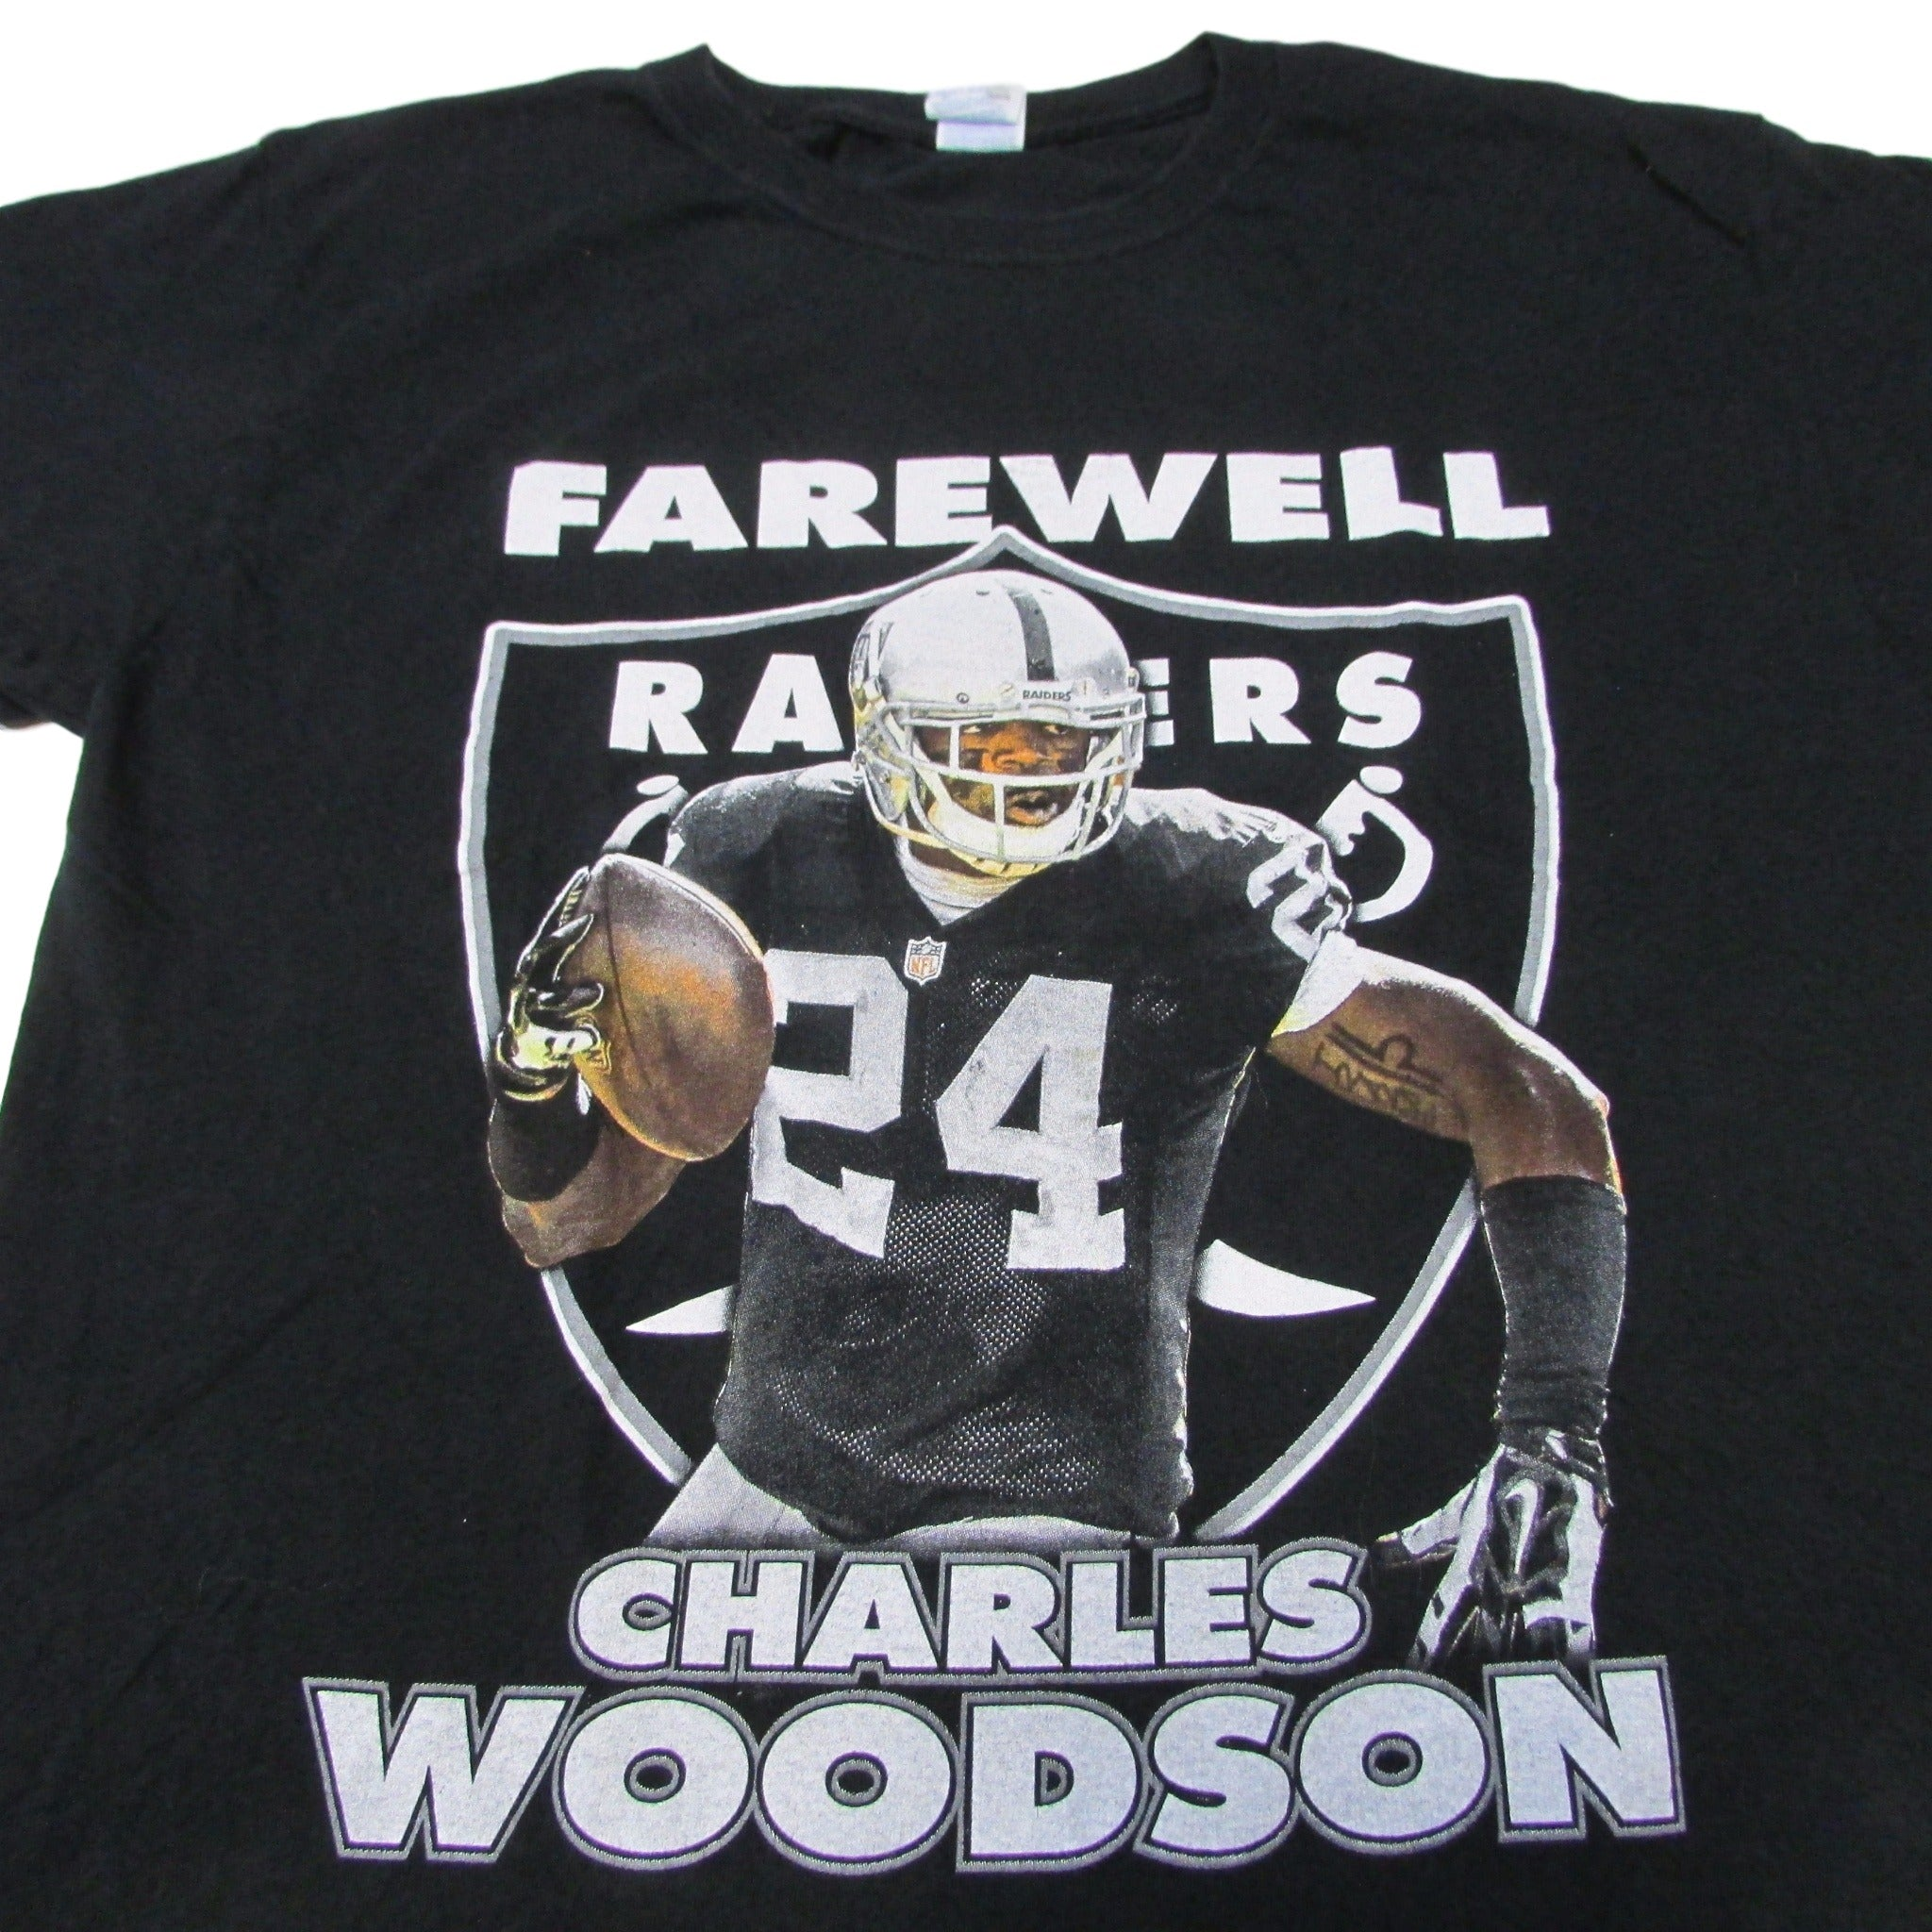 Oakland Raiders Farewell Charles Woodson Football T-Shirt Sz L